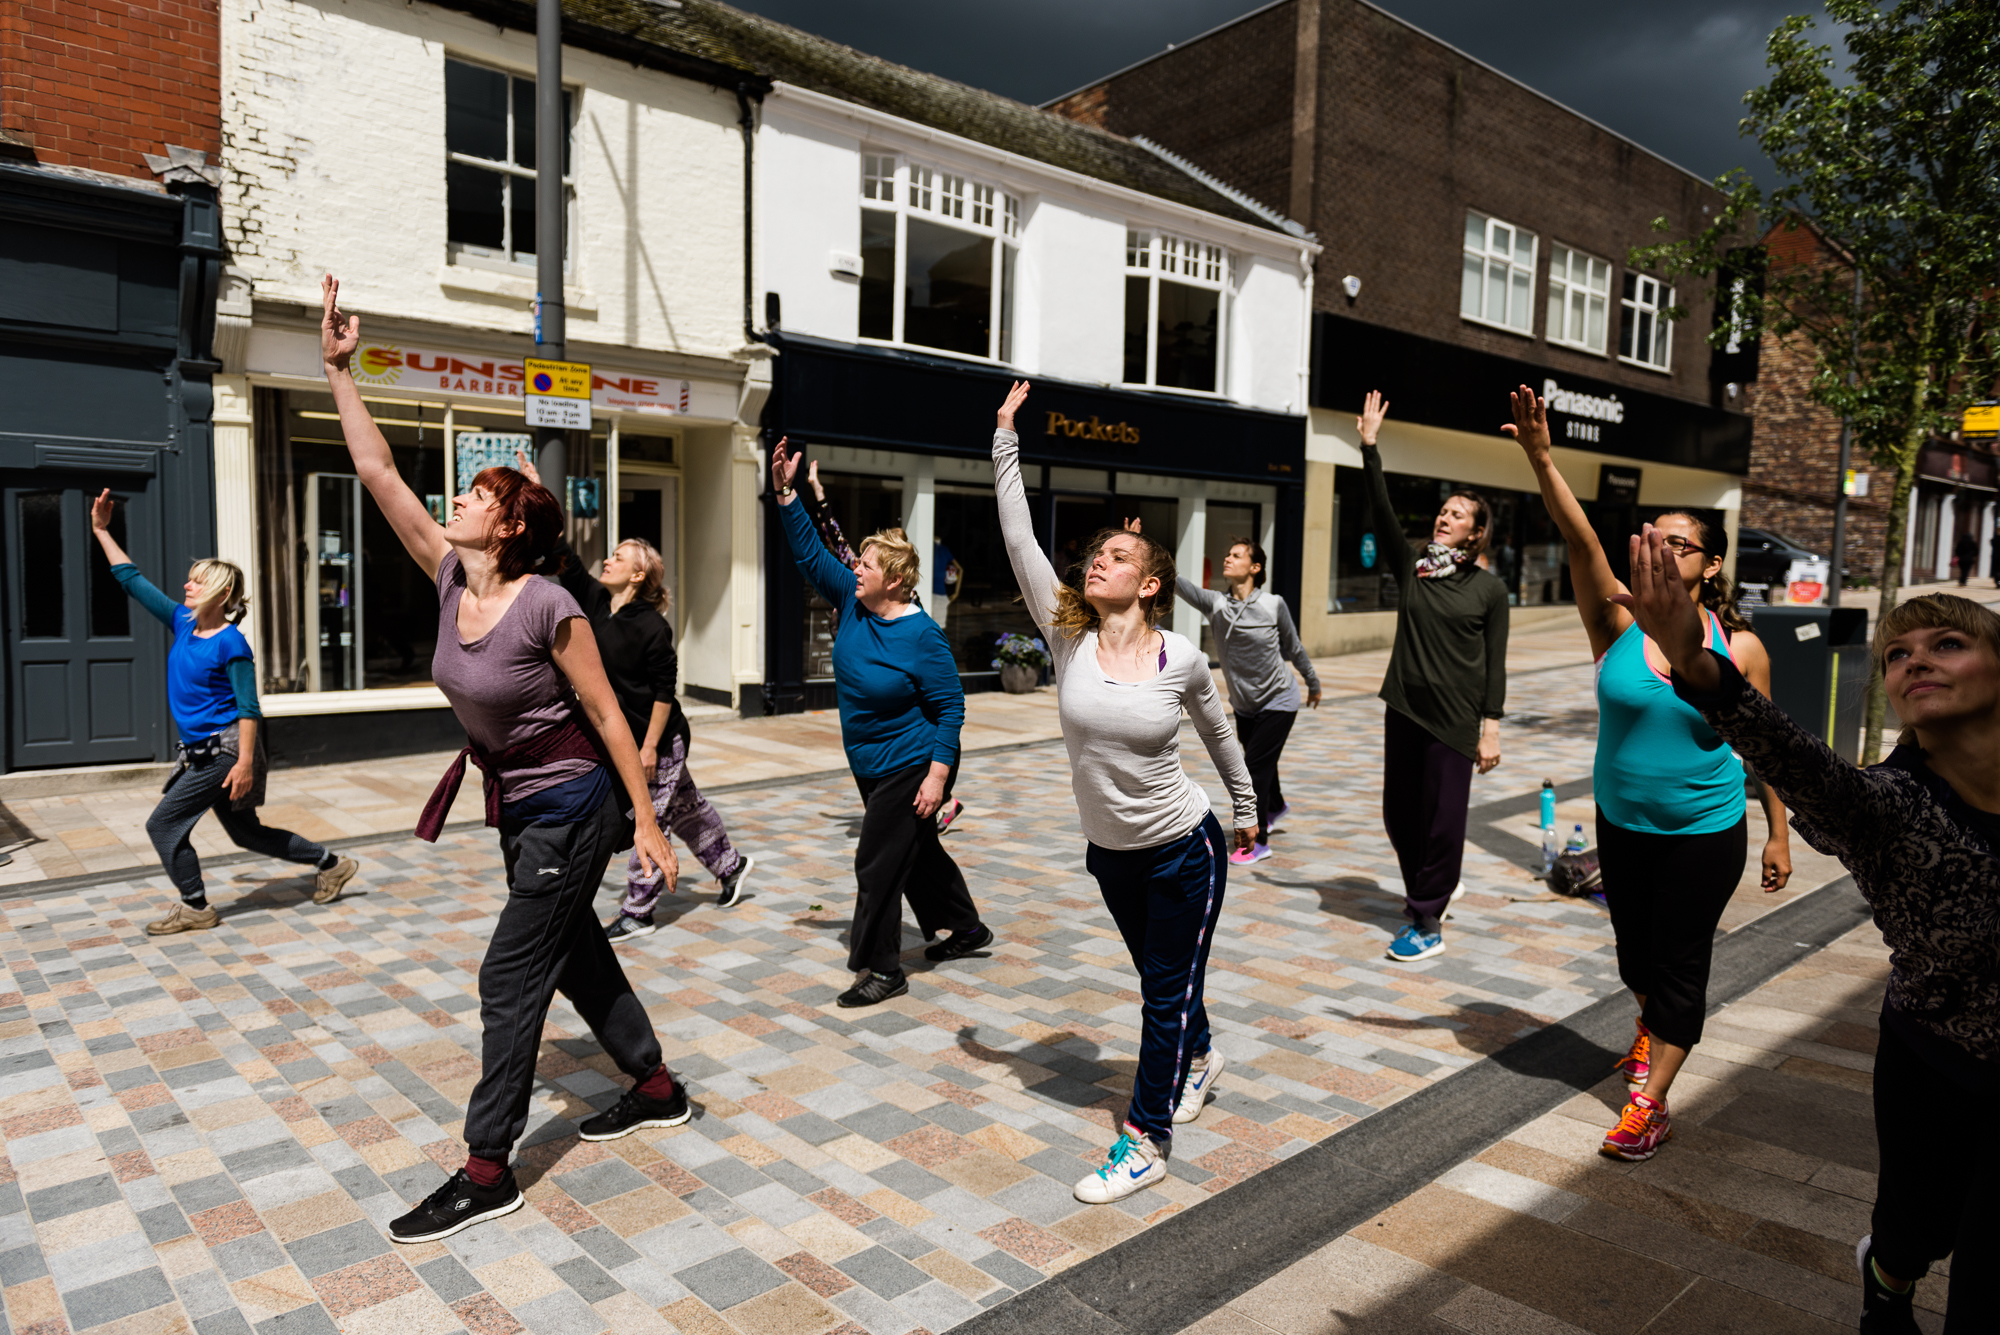 Restoke - Big Dance Rehearsal - Dance Fridays - Dancing in the Street - The Regent Theatre,  Picadilly, Hanley - Documentary Photography by Jenny Harper-13.jpg